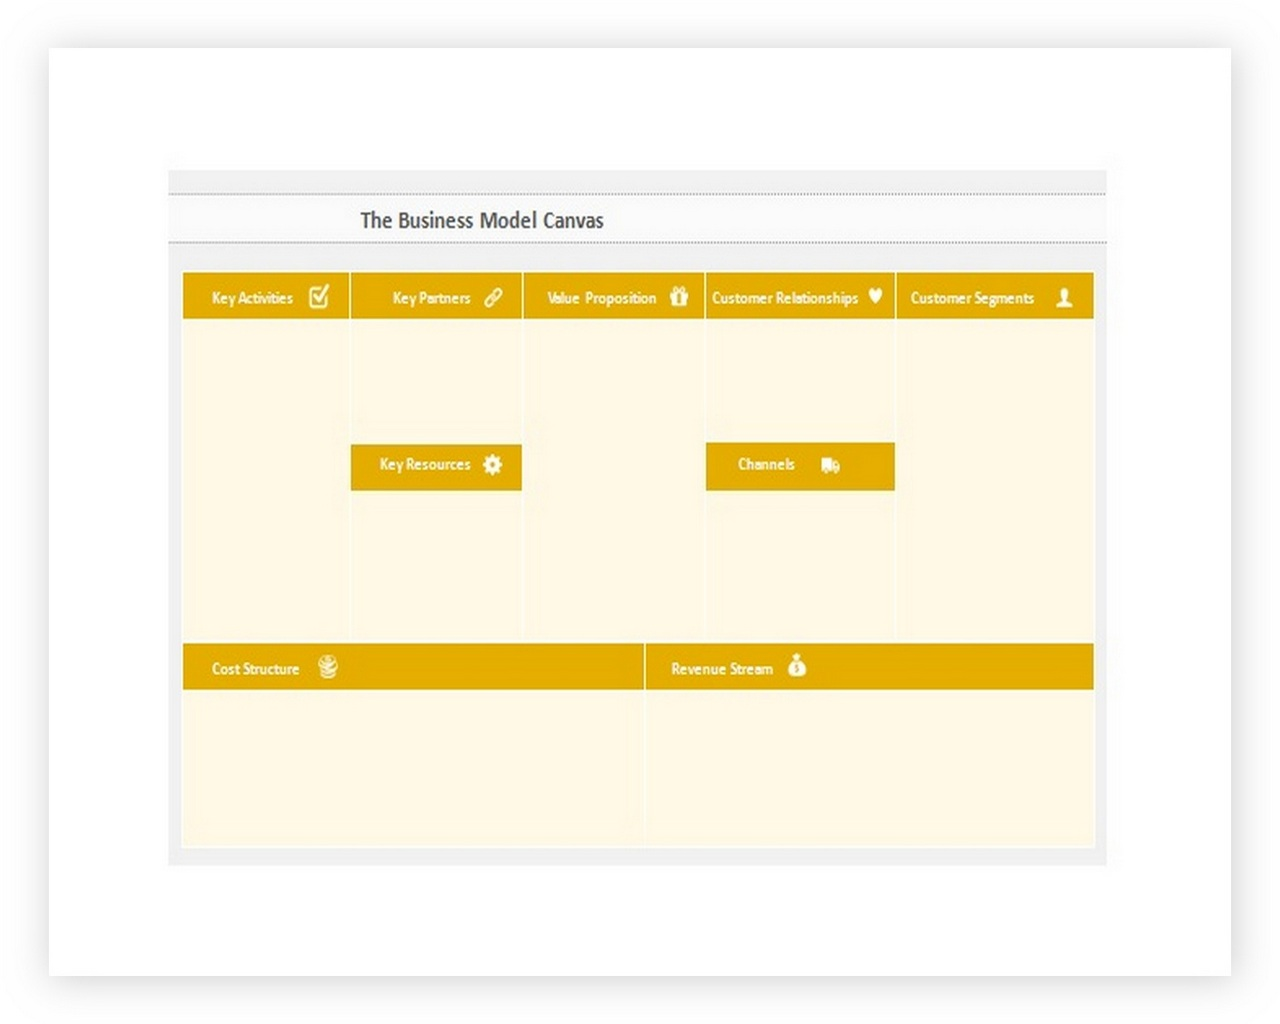 Business Model Canvas Template ppt 02